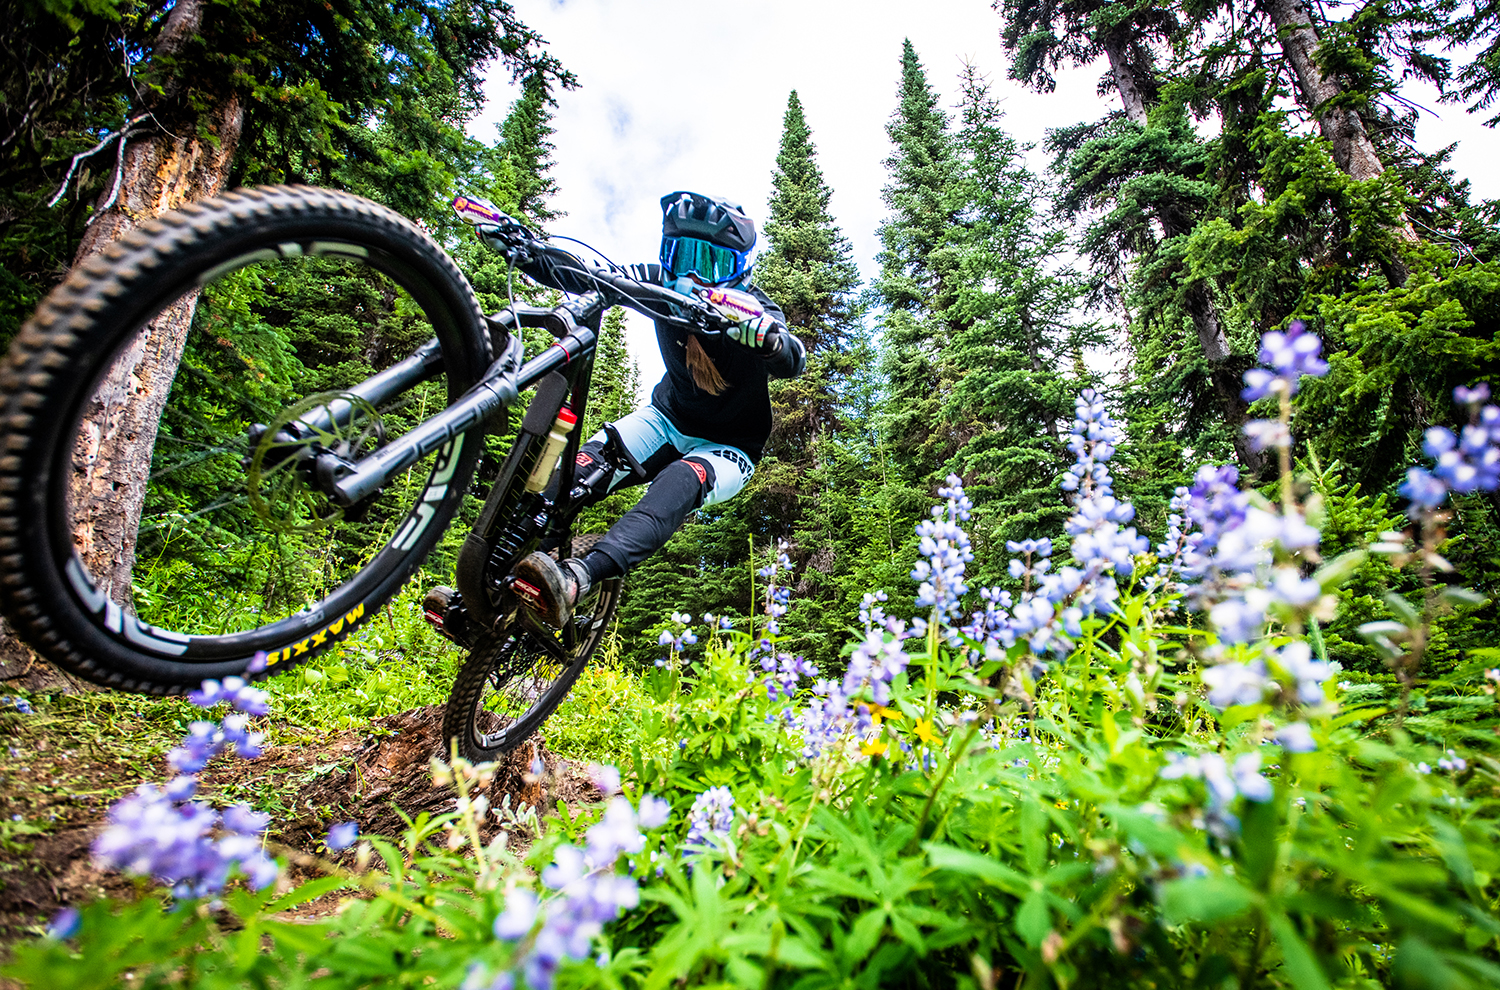 Miranda Miller goes on Blister's Bikes & Big Ideas Podcast to discuss starting her new YouTube channel, MGM Alternative, with Remi Gauvin and Jesse Melamed; choosing riding partners; racing Enduro vs. racing DH; espresso machines & World Cup wins; books; & more.